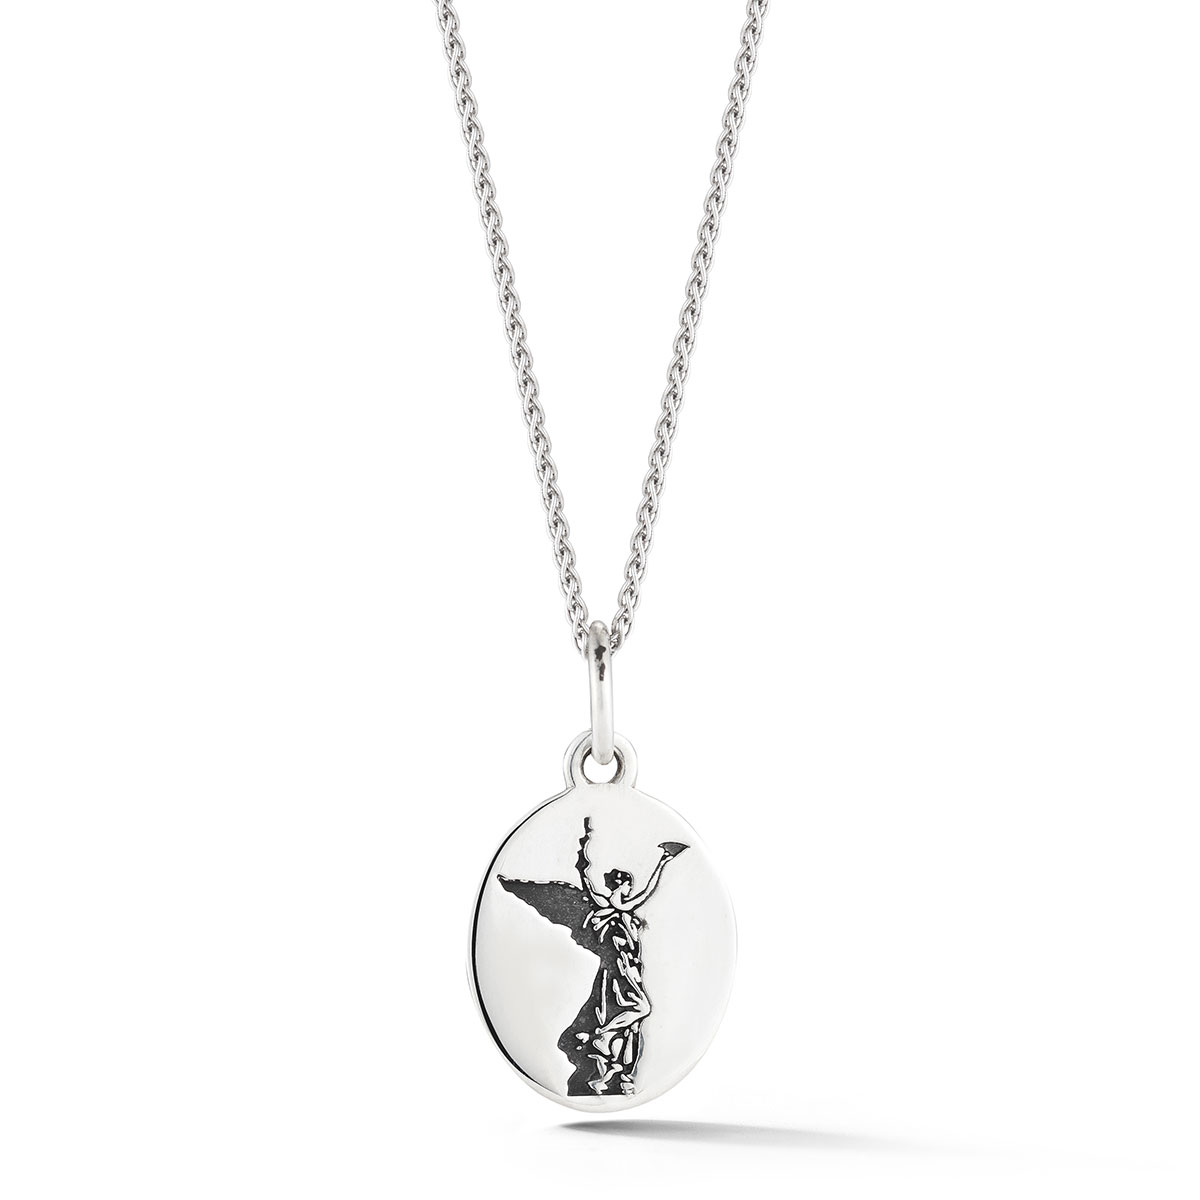 Spirit of Life Etched Disc charm